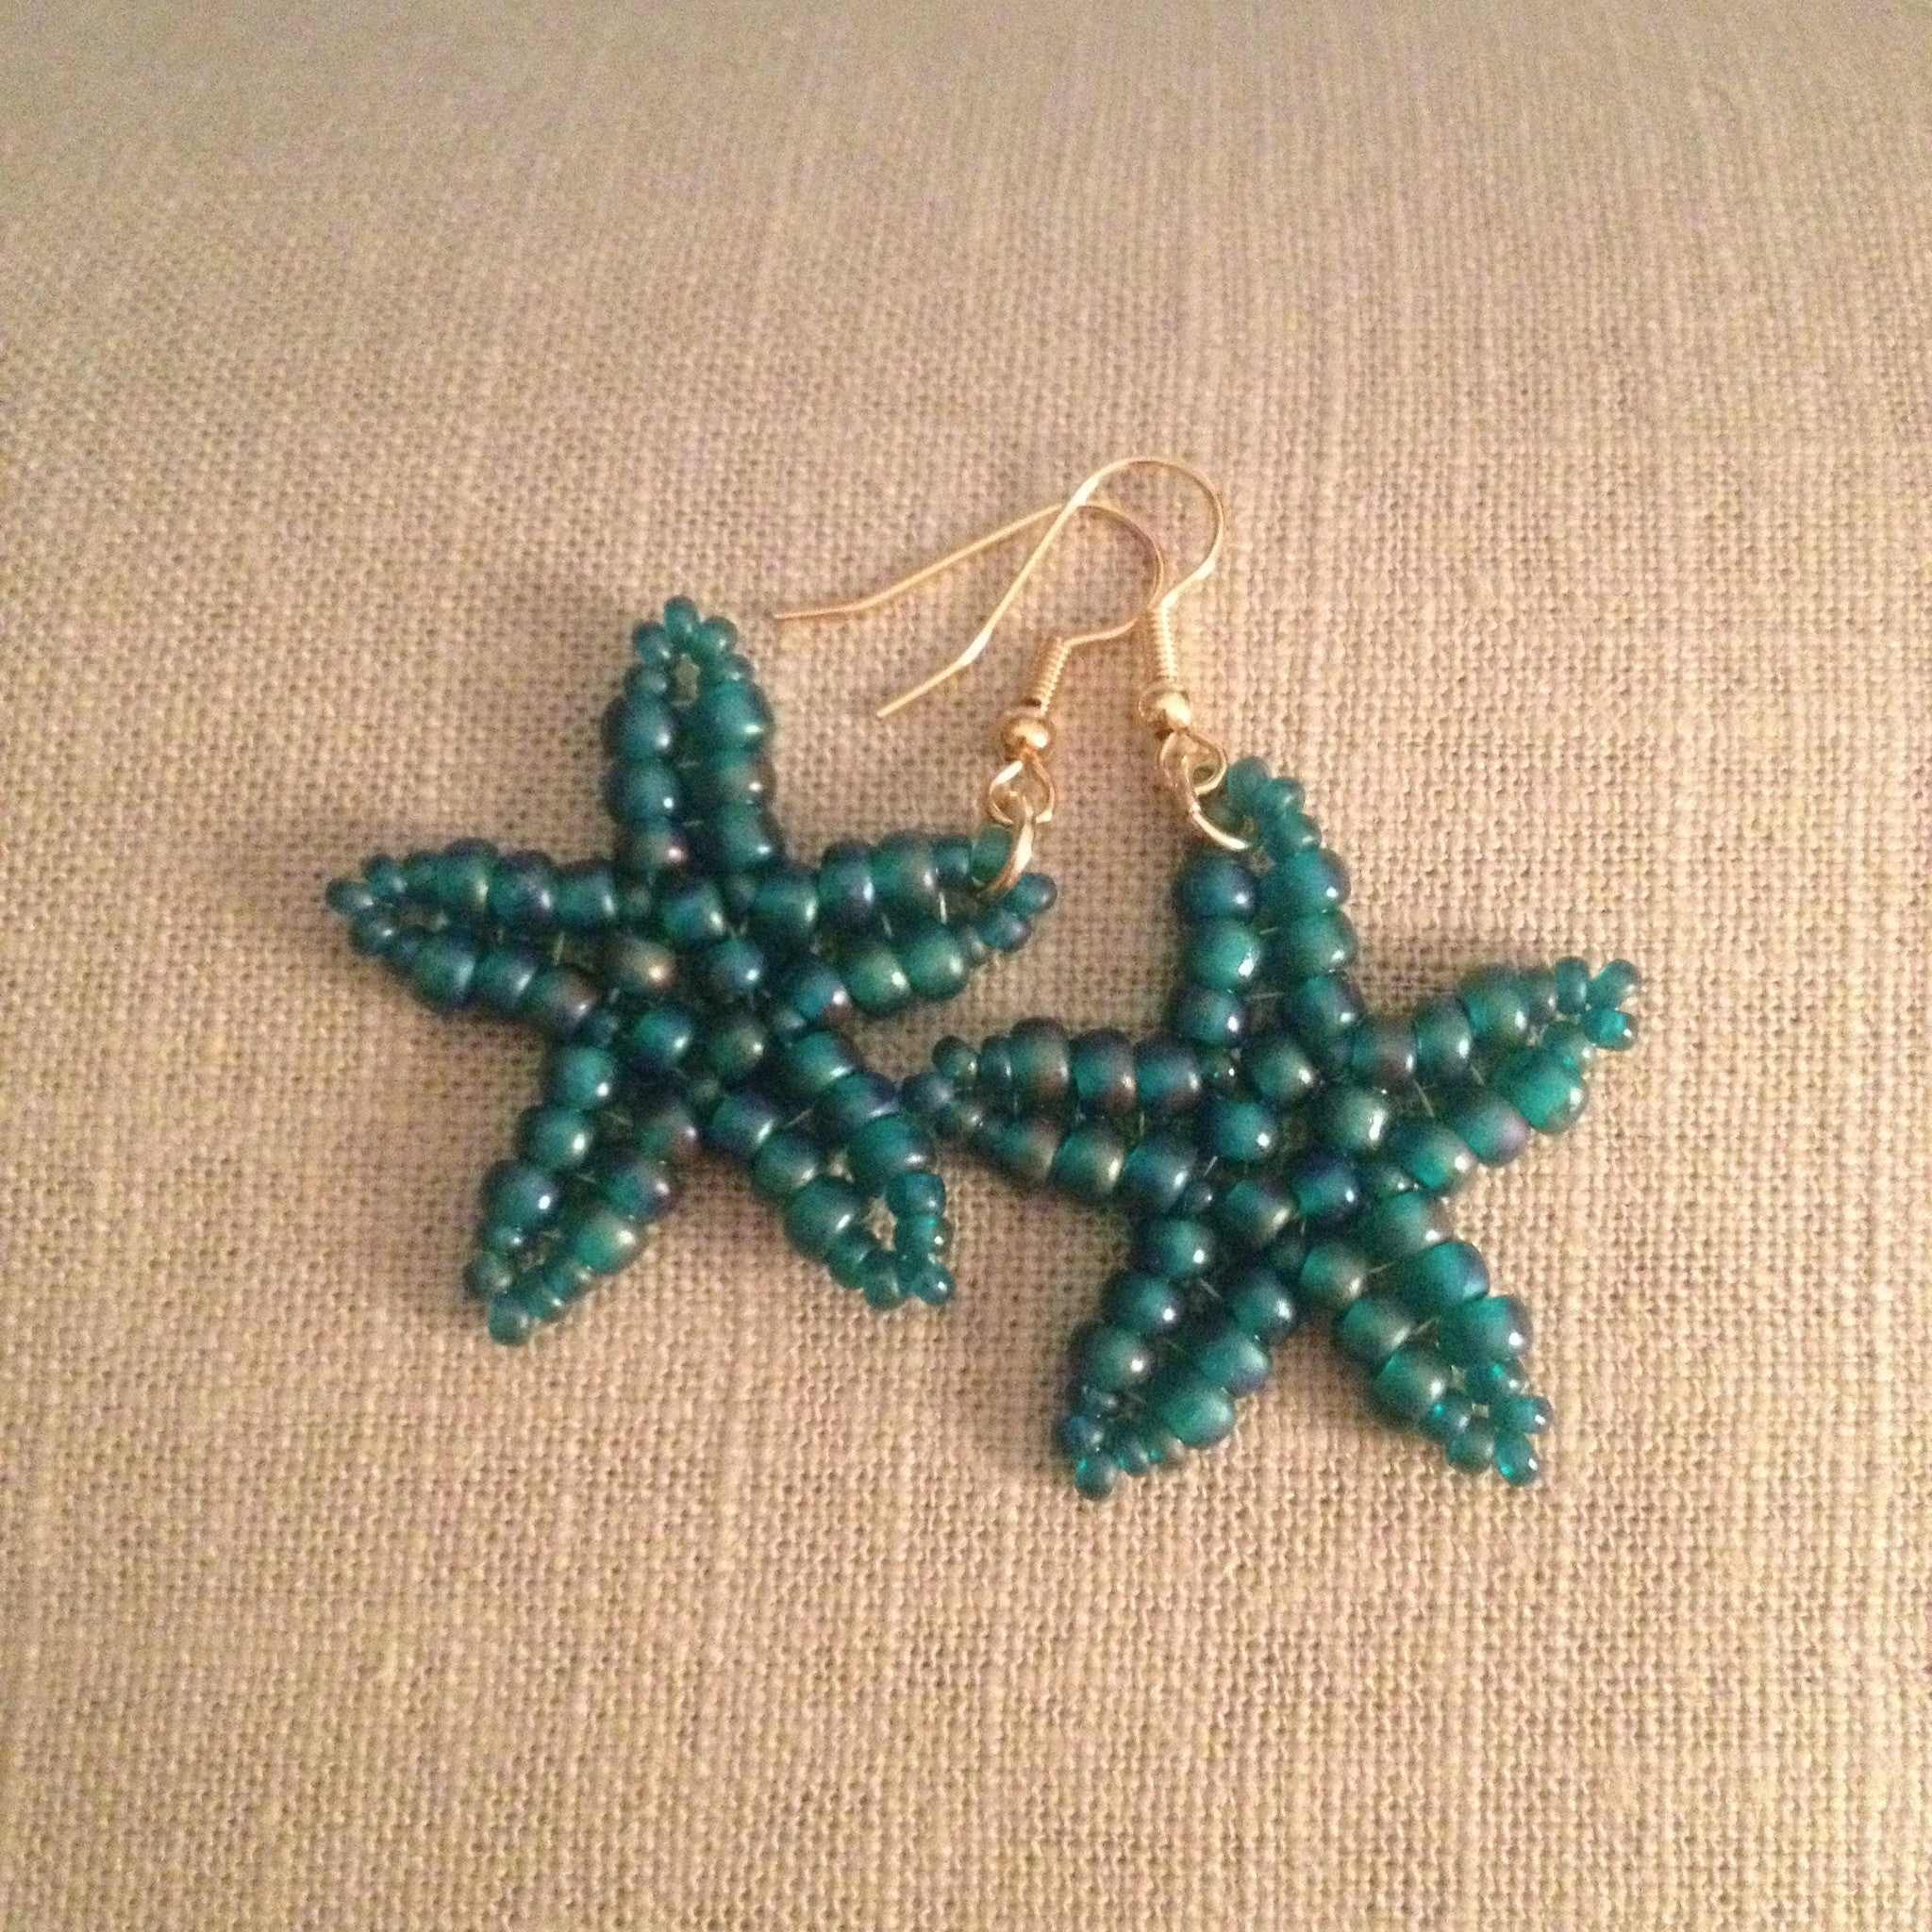 Starfish Handmade beaded earrings green beachy resort cruise wear beachy fun style